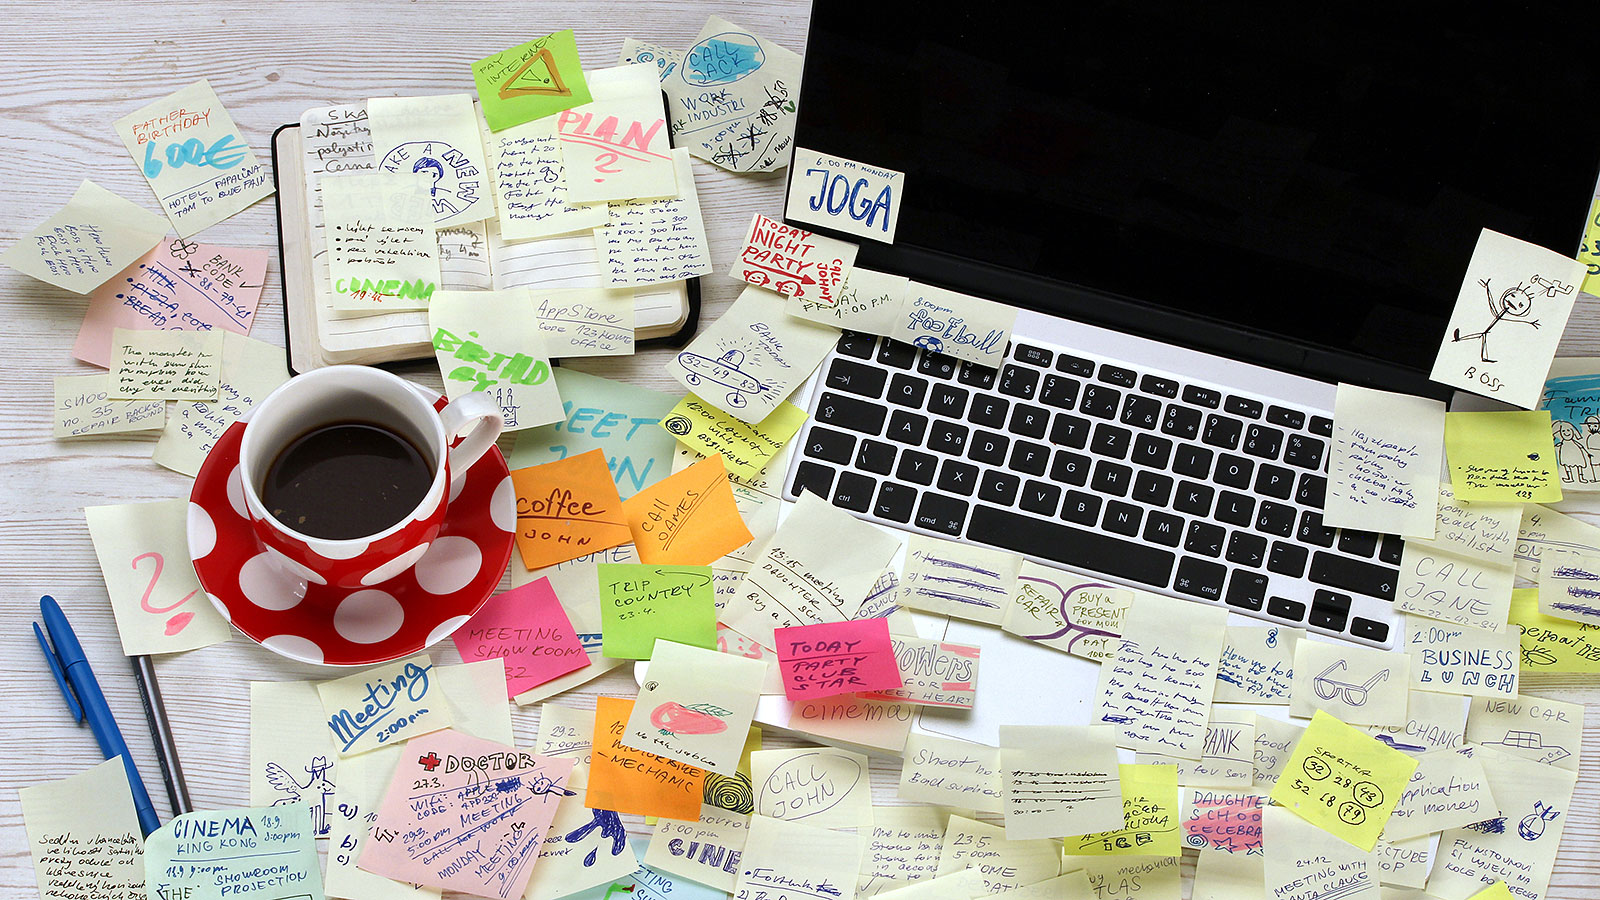 6 ways to prove your productivity when working from home